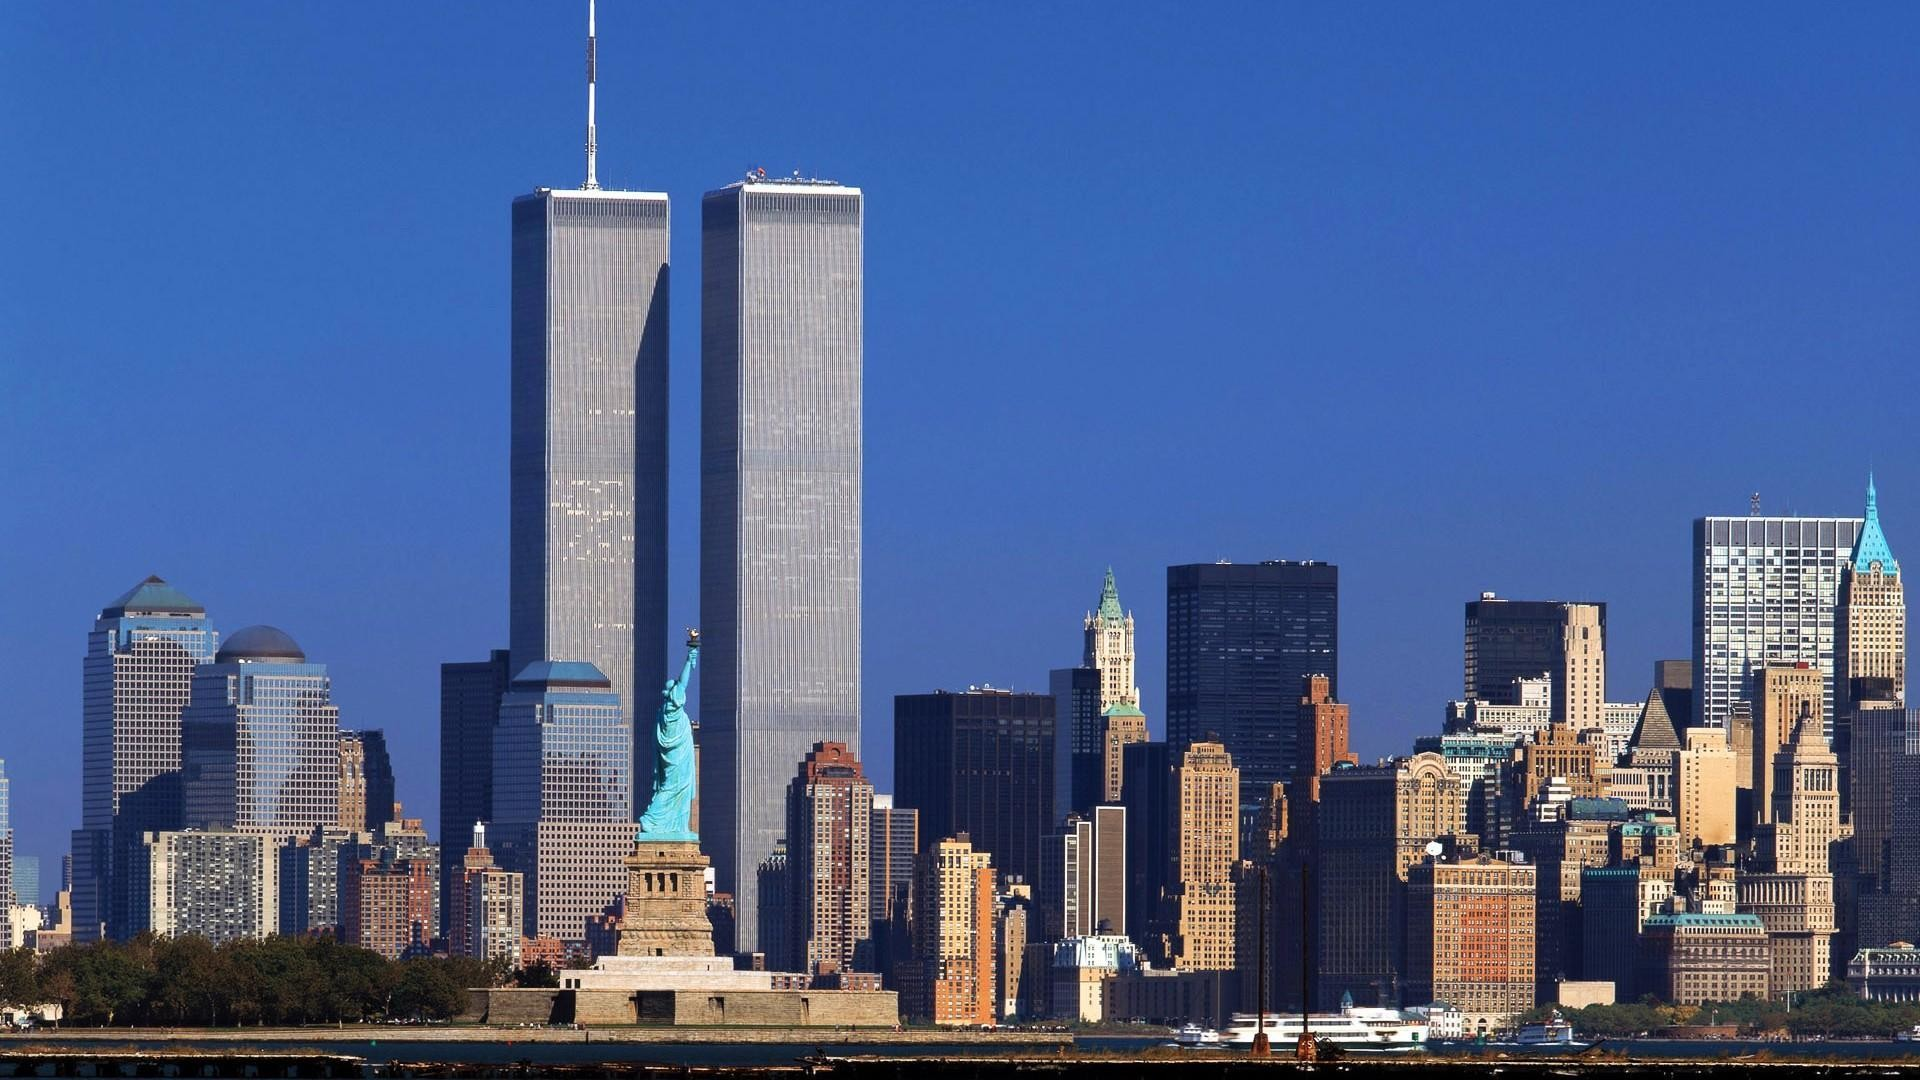 Res: 1920x1080, Wallpapers of the twin towers in New York  1080p hd .